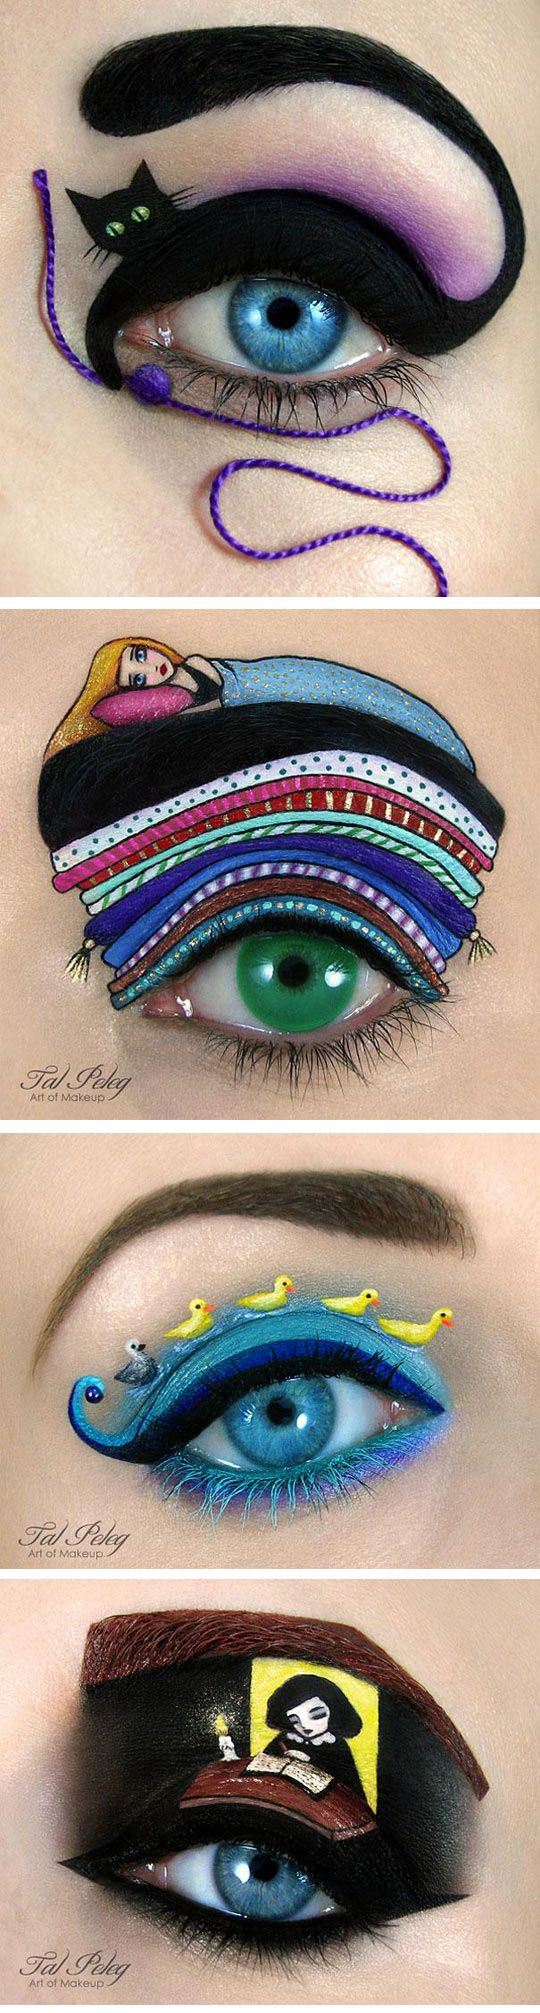 Imaginative makeup art…ain't nobody got time for that!